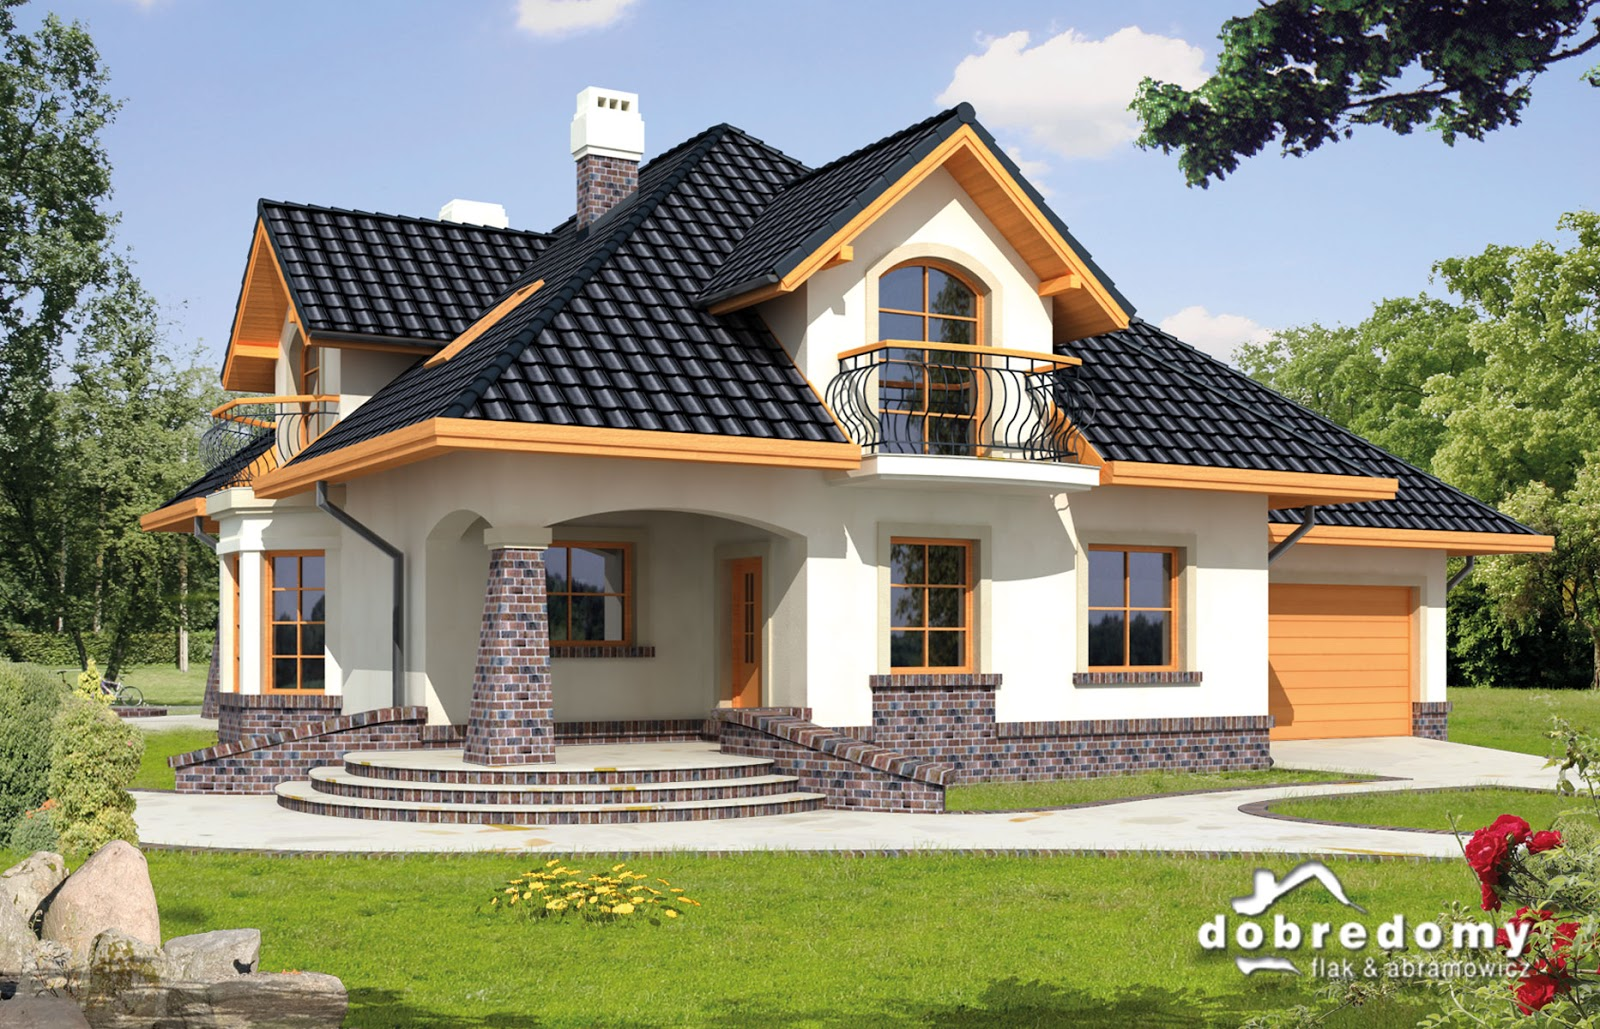 House design philippines 2017 - The Following European House Design Can Be Imitated Without The Chimney Ideal For Bungalow Type Of House In The Philippines 2017 Thoughtskoto